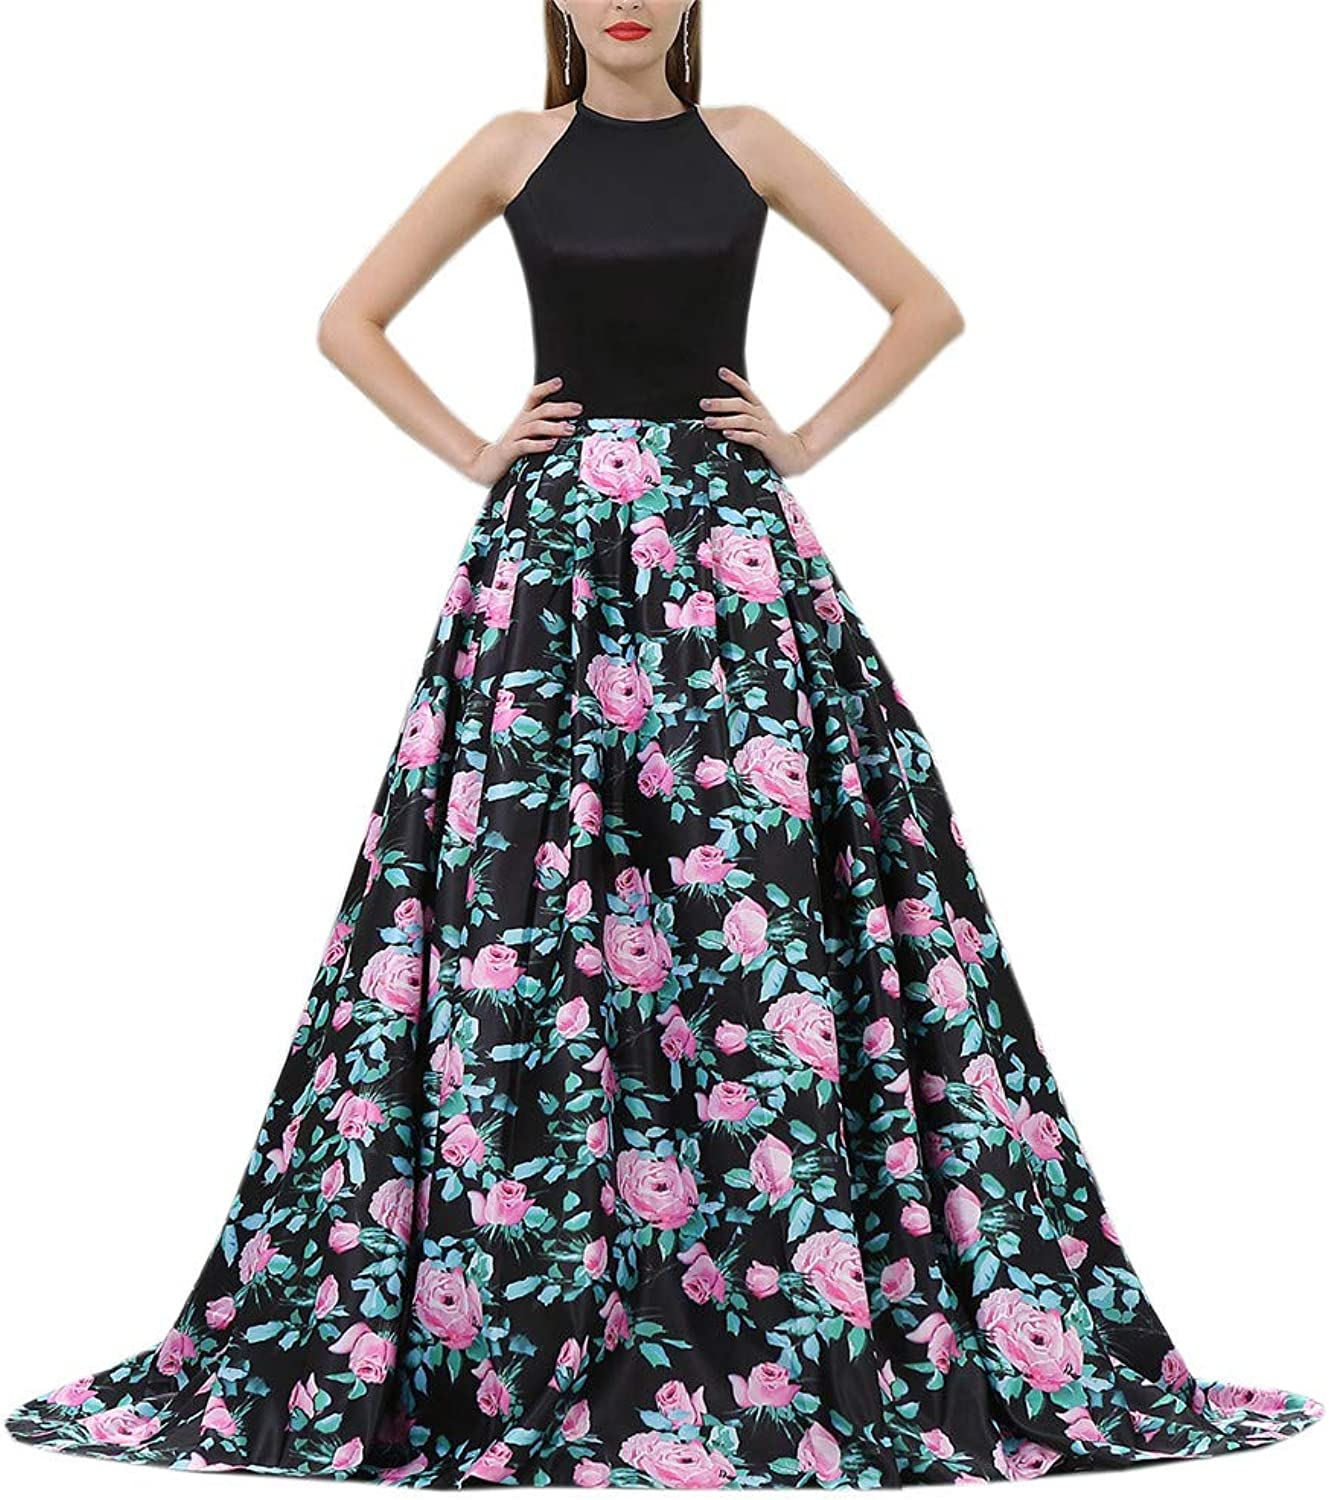 Datangep Sexy Women's Two Piece Prom Dress Lace Beaded Formal Evening Gown with Pockets